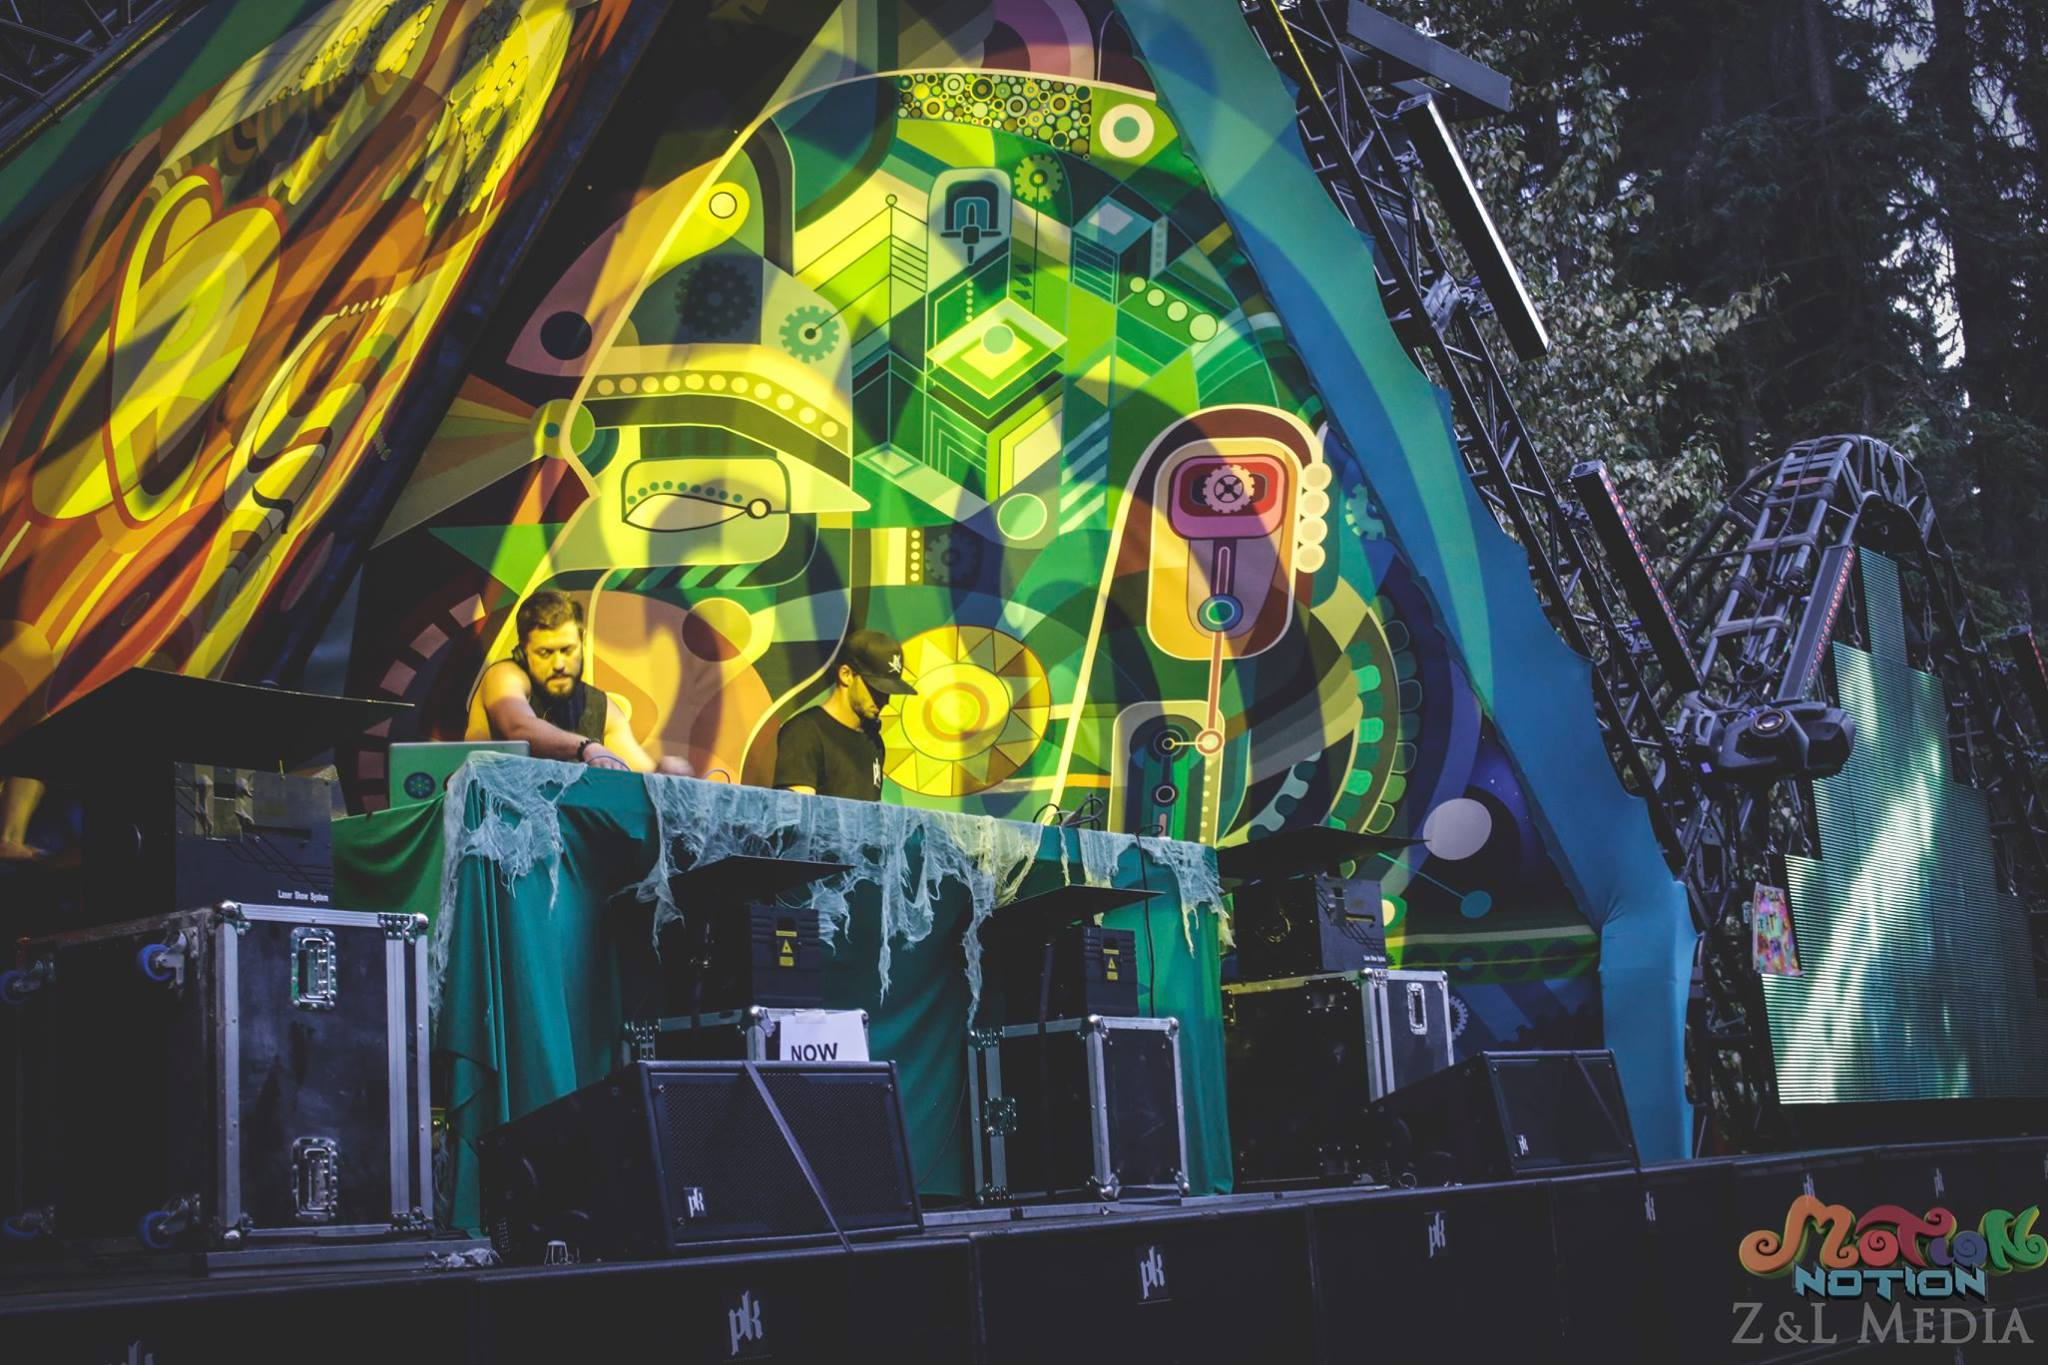 Motion Notion 2016 stage decoration